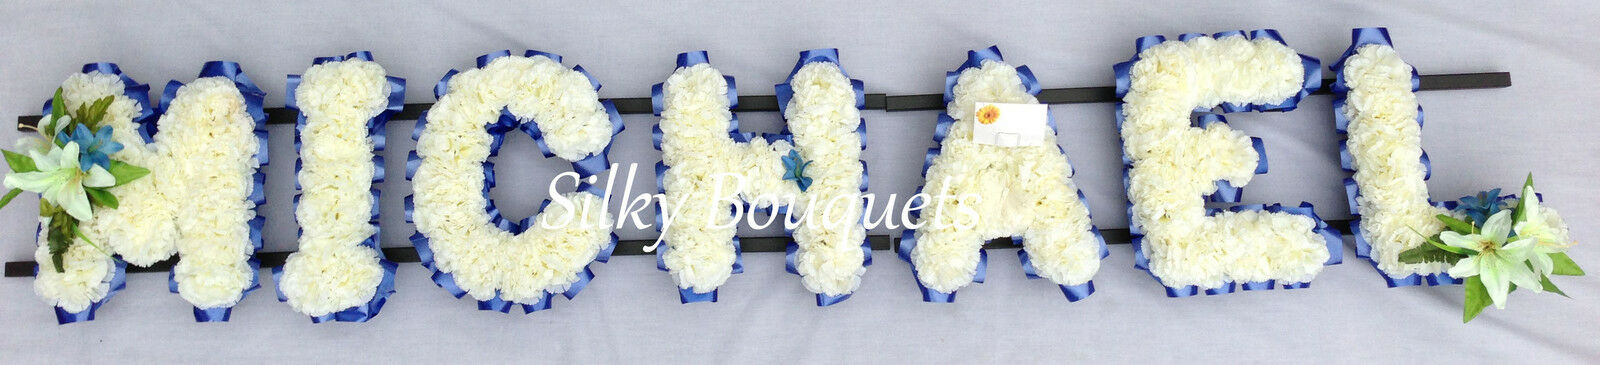 Artificial Silk Funeral Flower Any Name 7 Letters Personalised Wreath Tribute